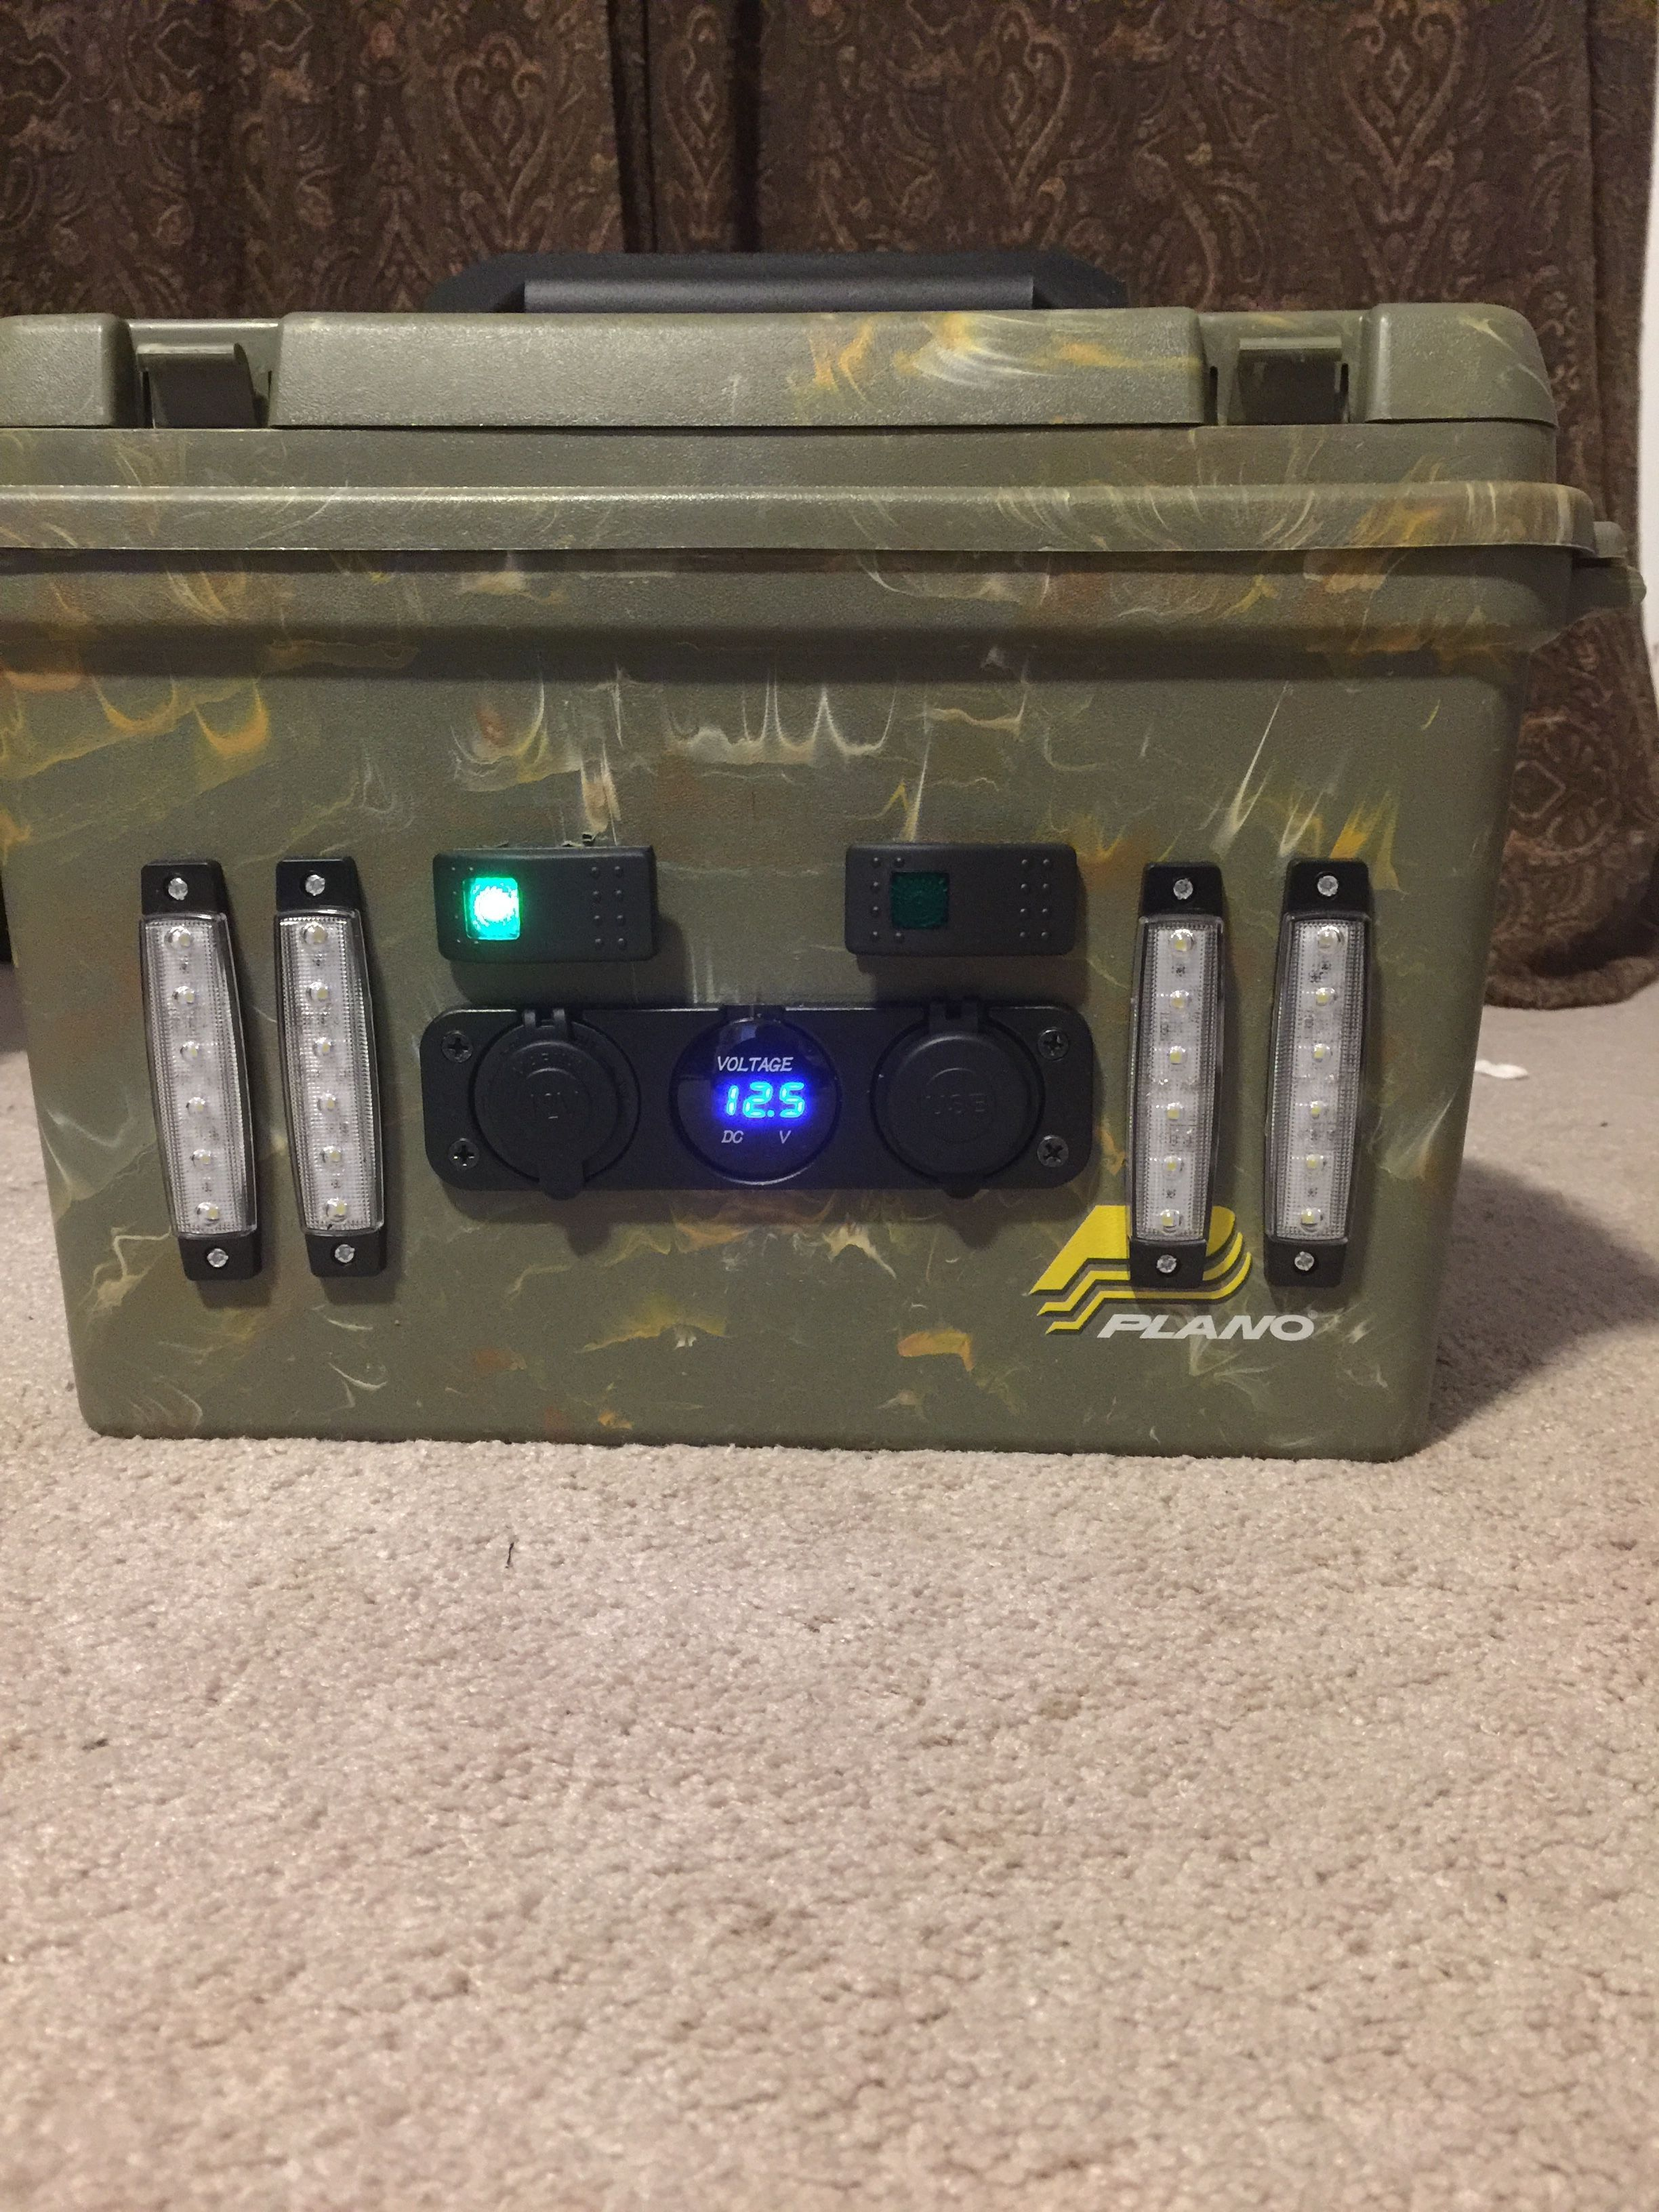 Kayak Battery Box Plano Field Box Two 12 Volt Batteries Wired In Sequence Led Lights Usb Ports And Kayak Lights Kayak Fishing Diy Saltwater Fishing Gear